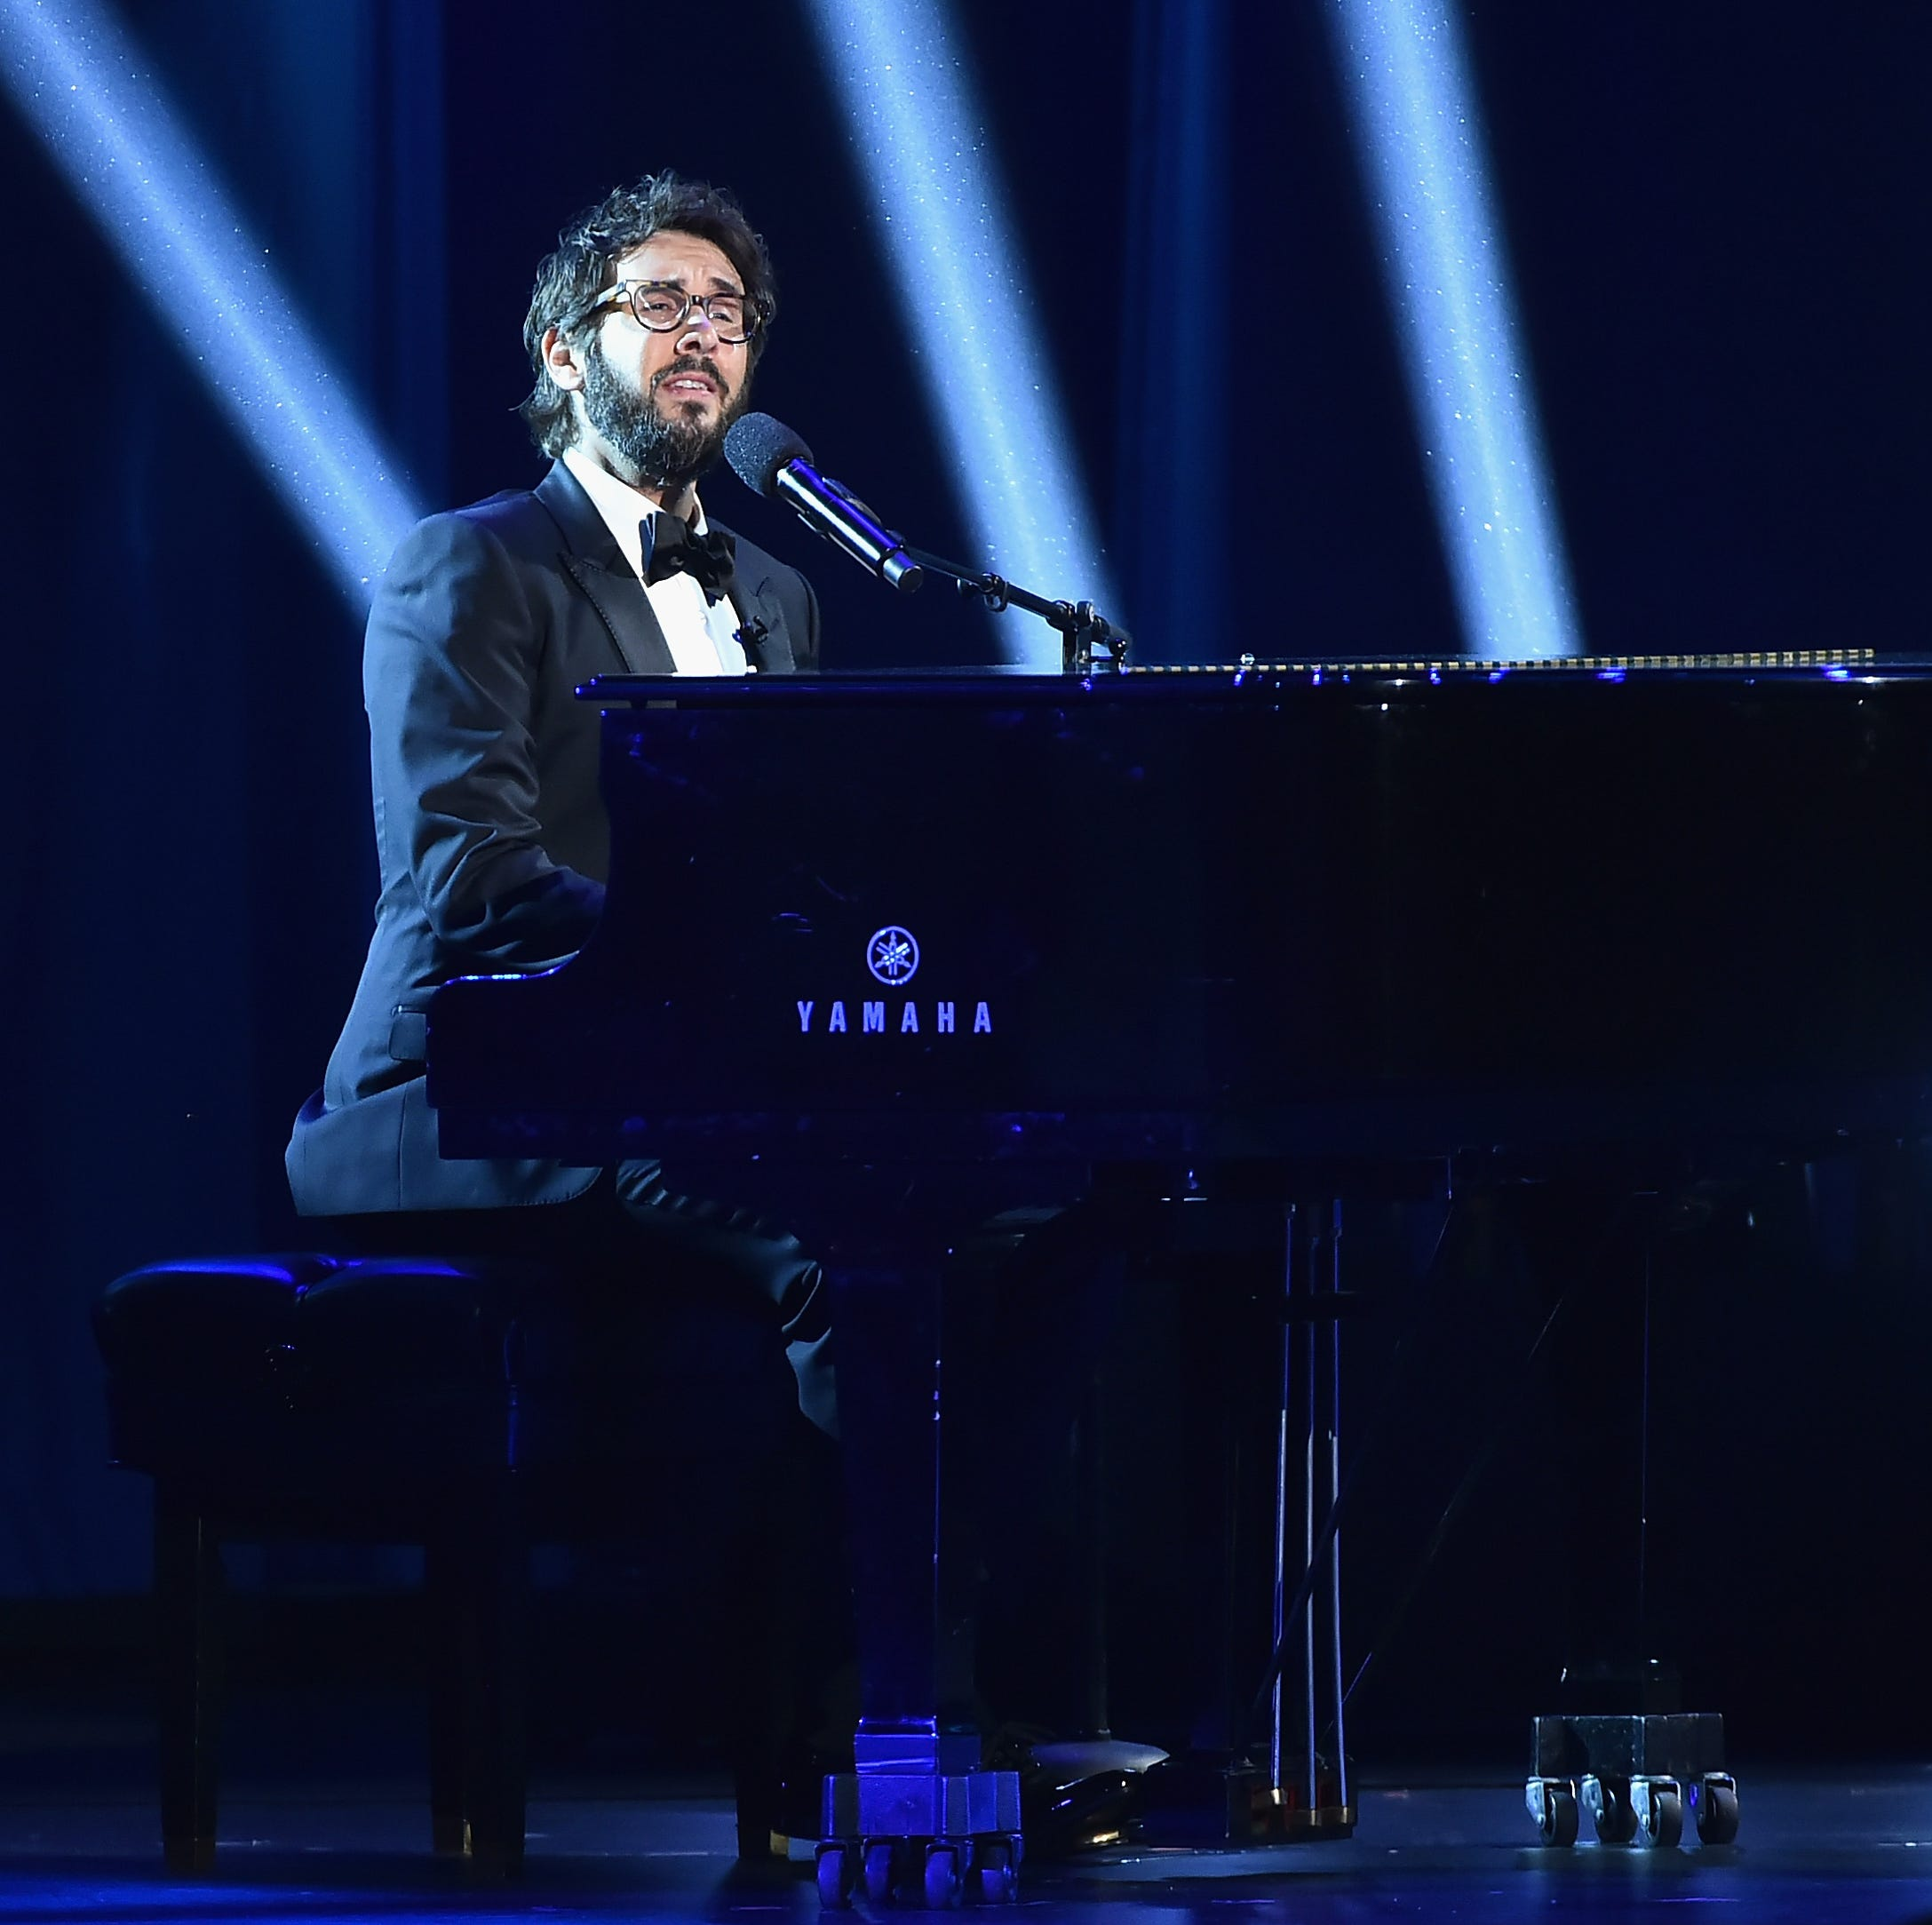 Josh Groban backtracks on 'Bridges' to meet old fans; Lady Gaga songs for babies